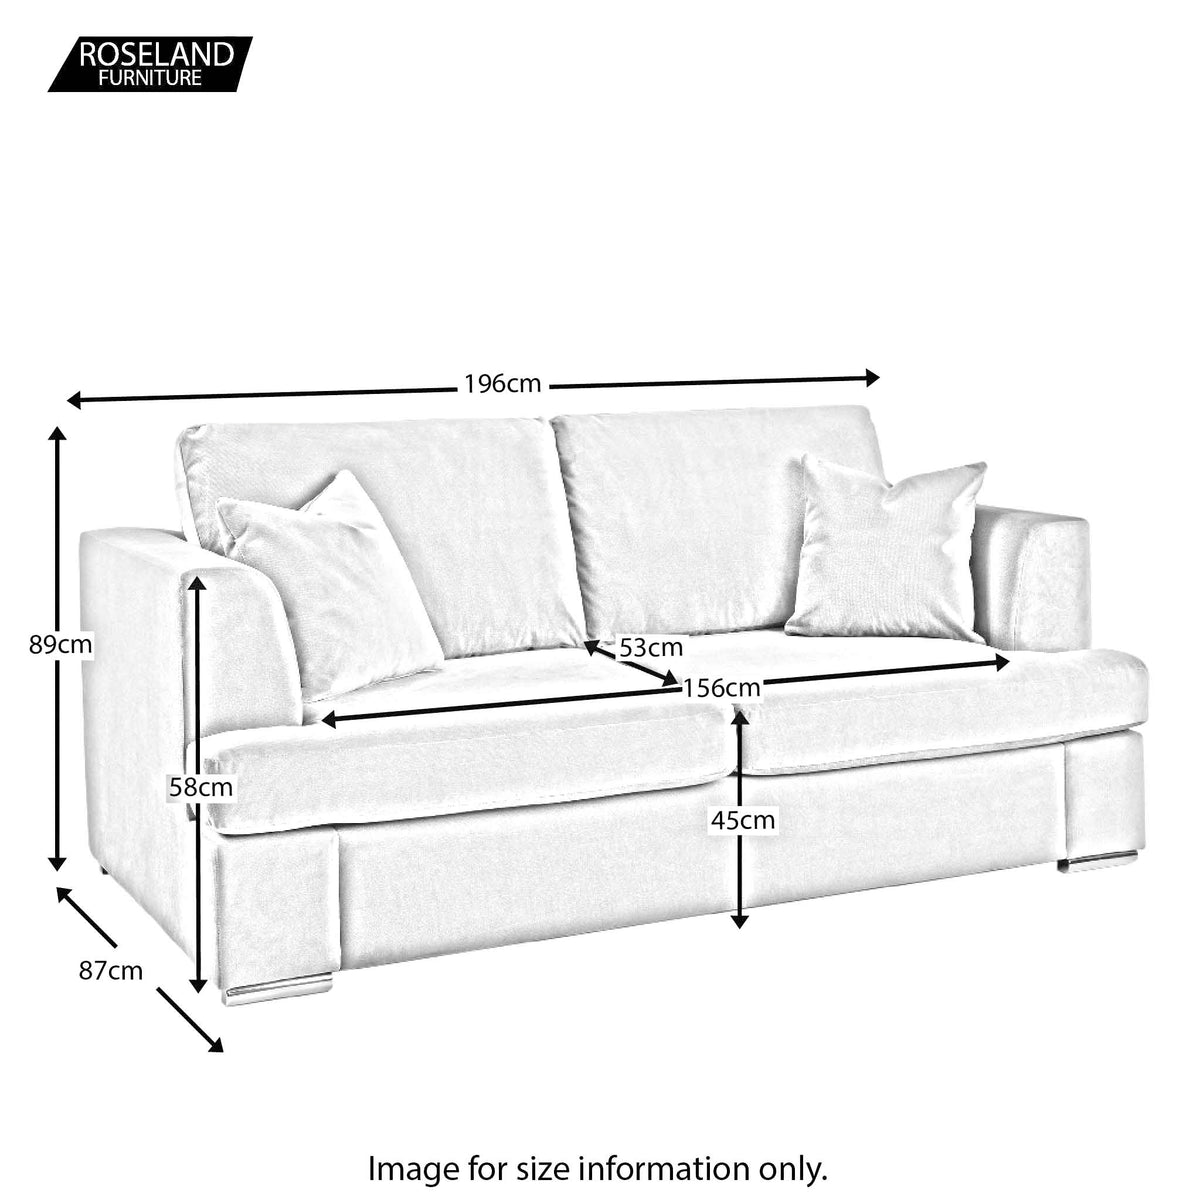 Felice 3 Seater Sofa - Size Guide